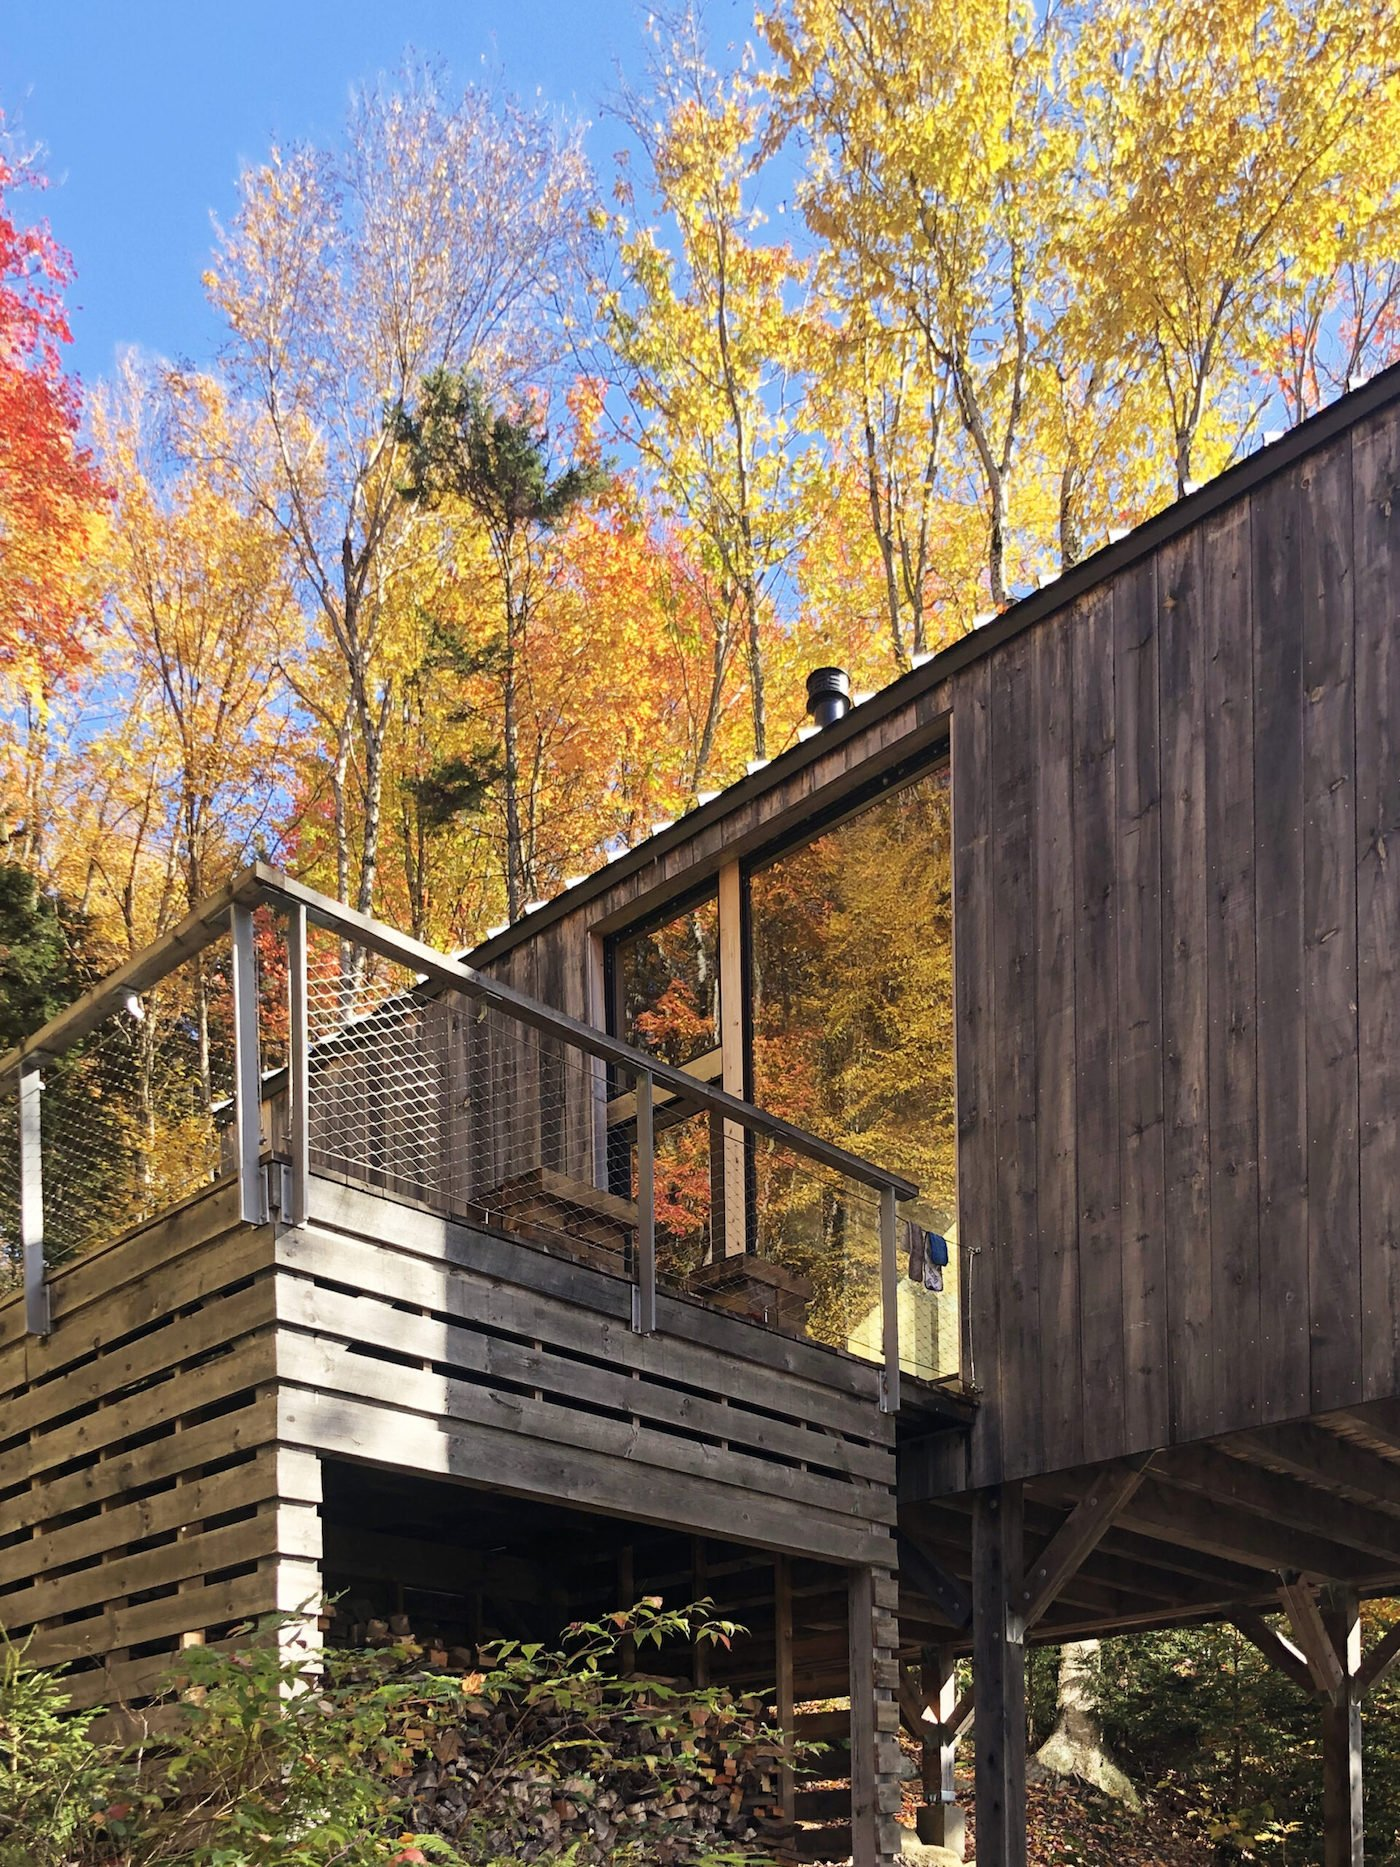 Timber deck of off-grid cabin